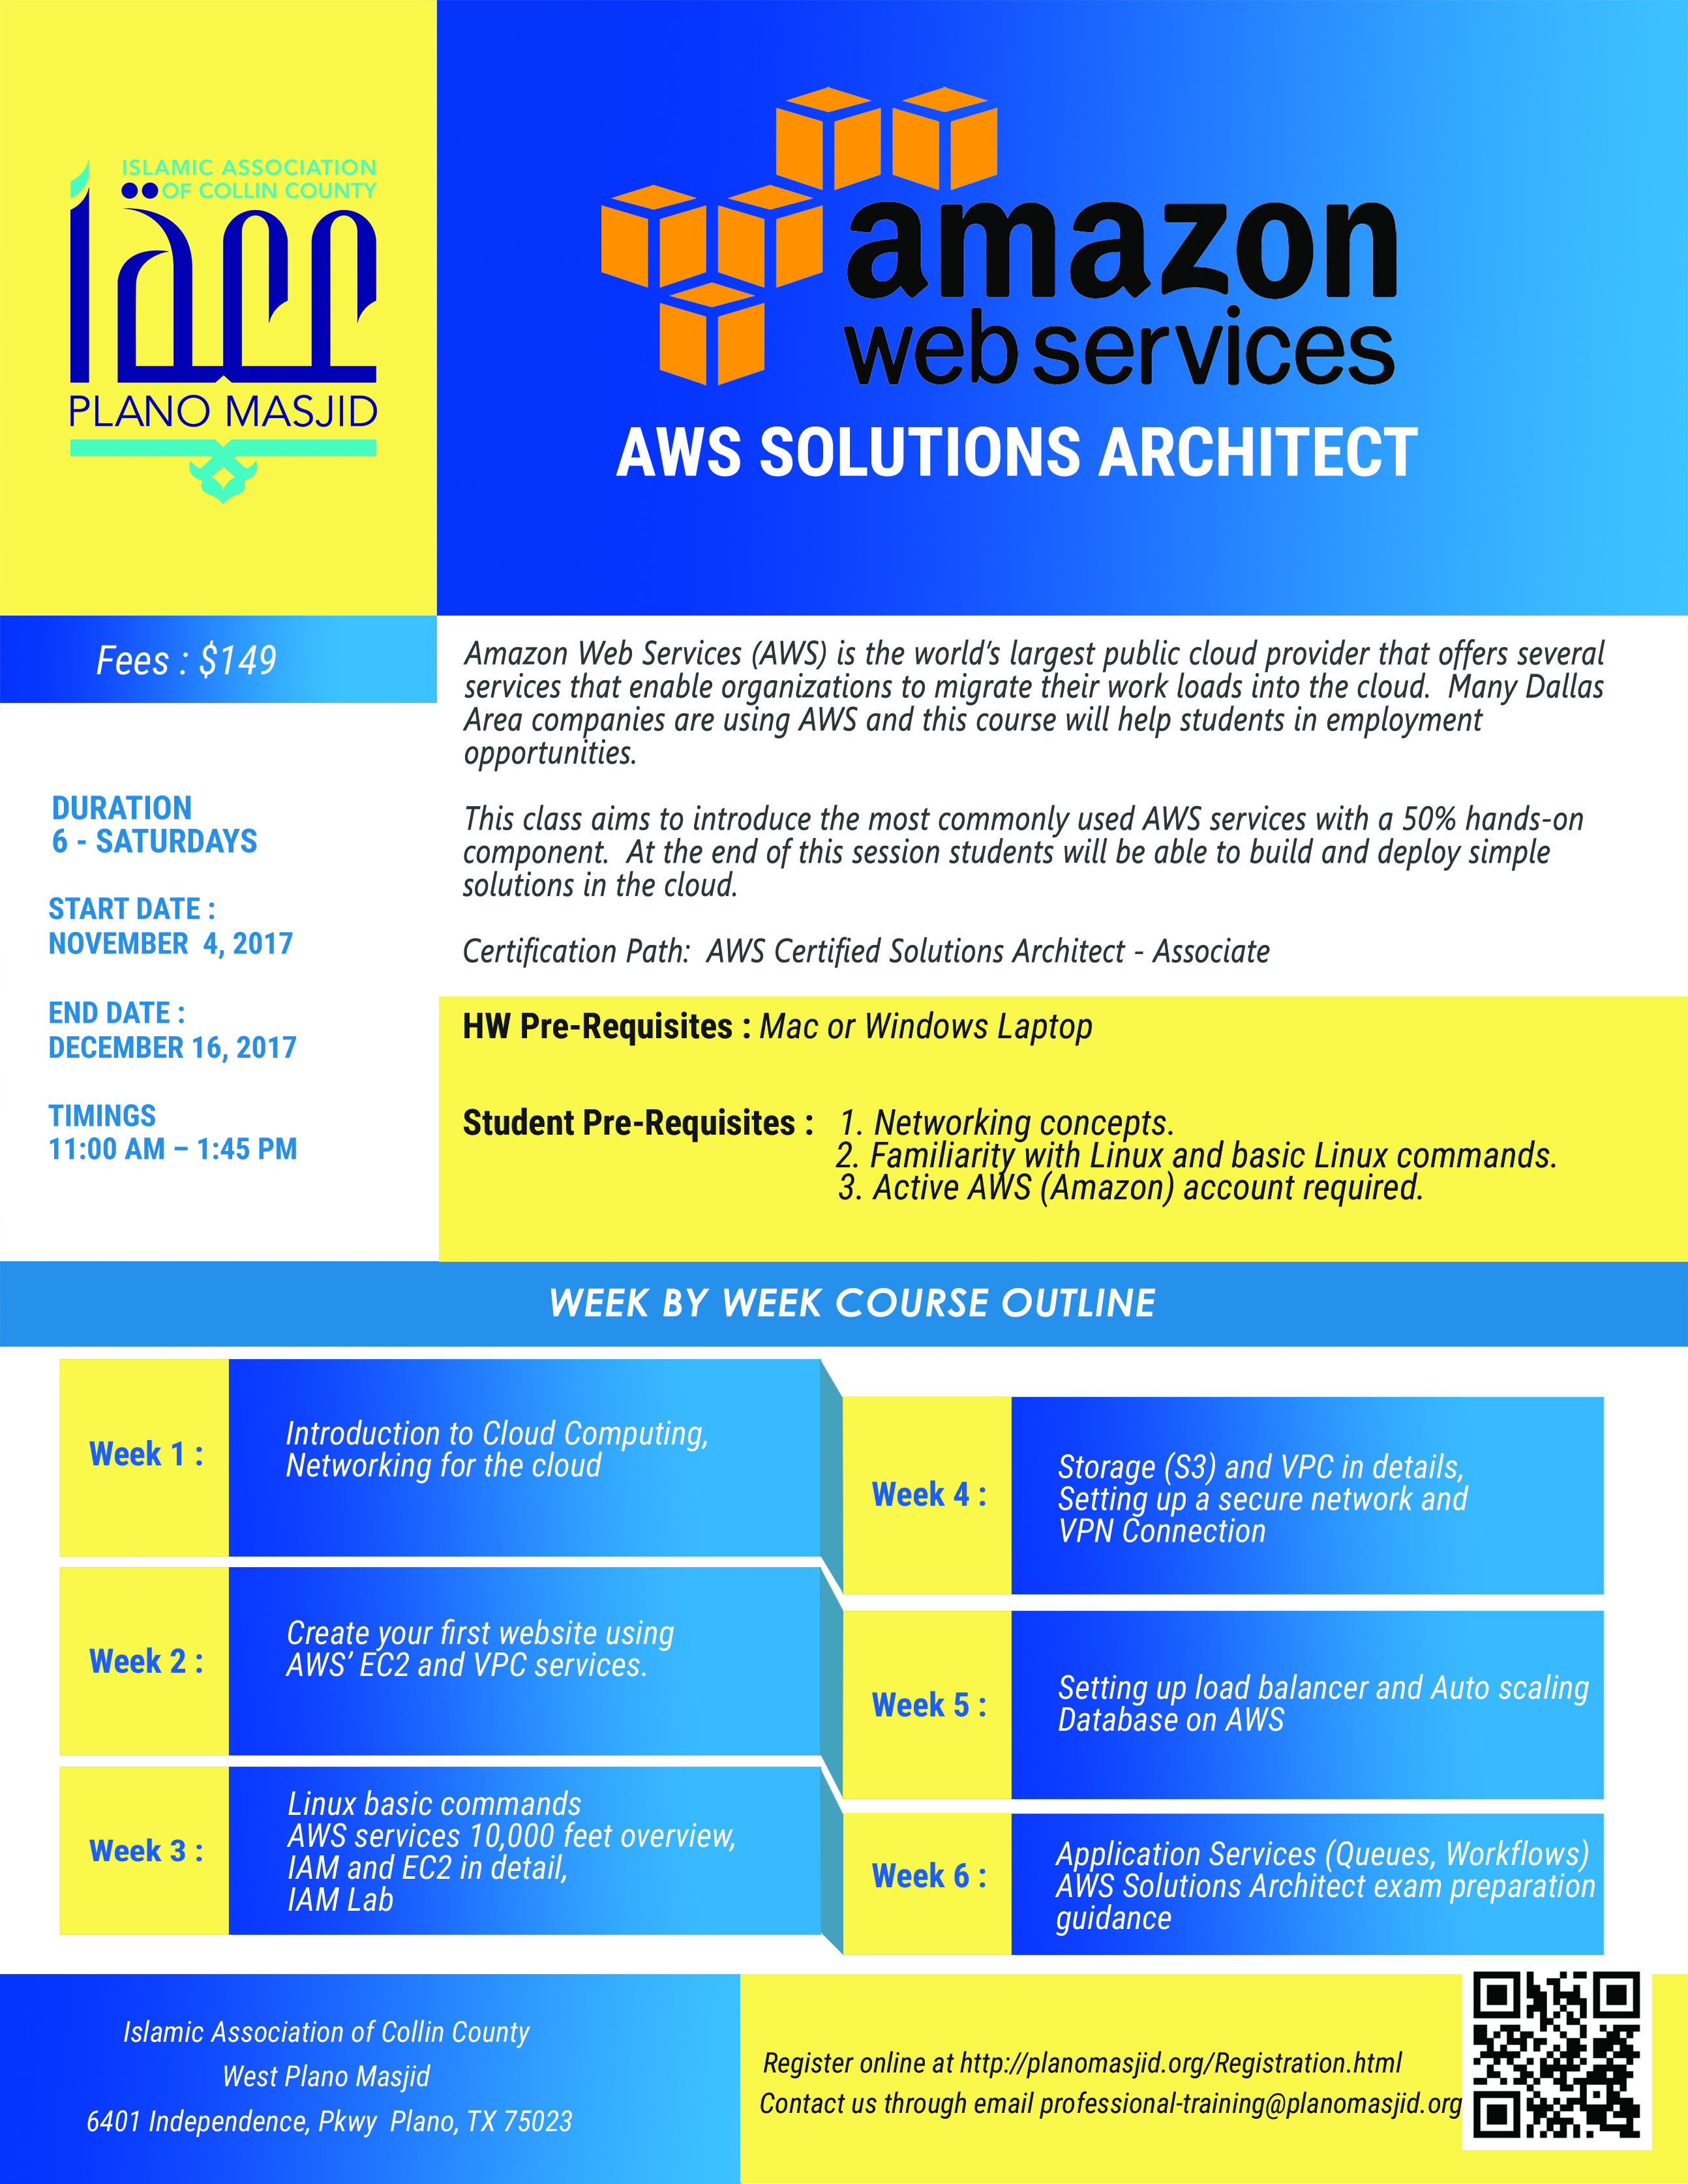 Iacc technology course announcement 2017 amazon webservices iacc technology course announcement 2017 amazon webservices aws solutions architect plano masjid xflitez Gallery